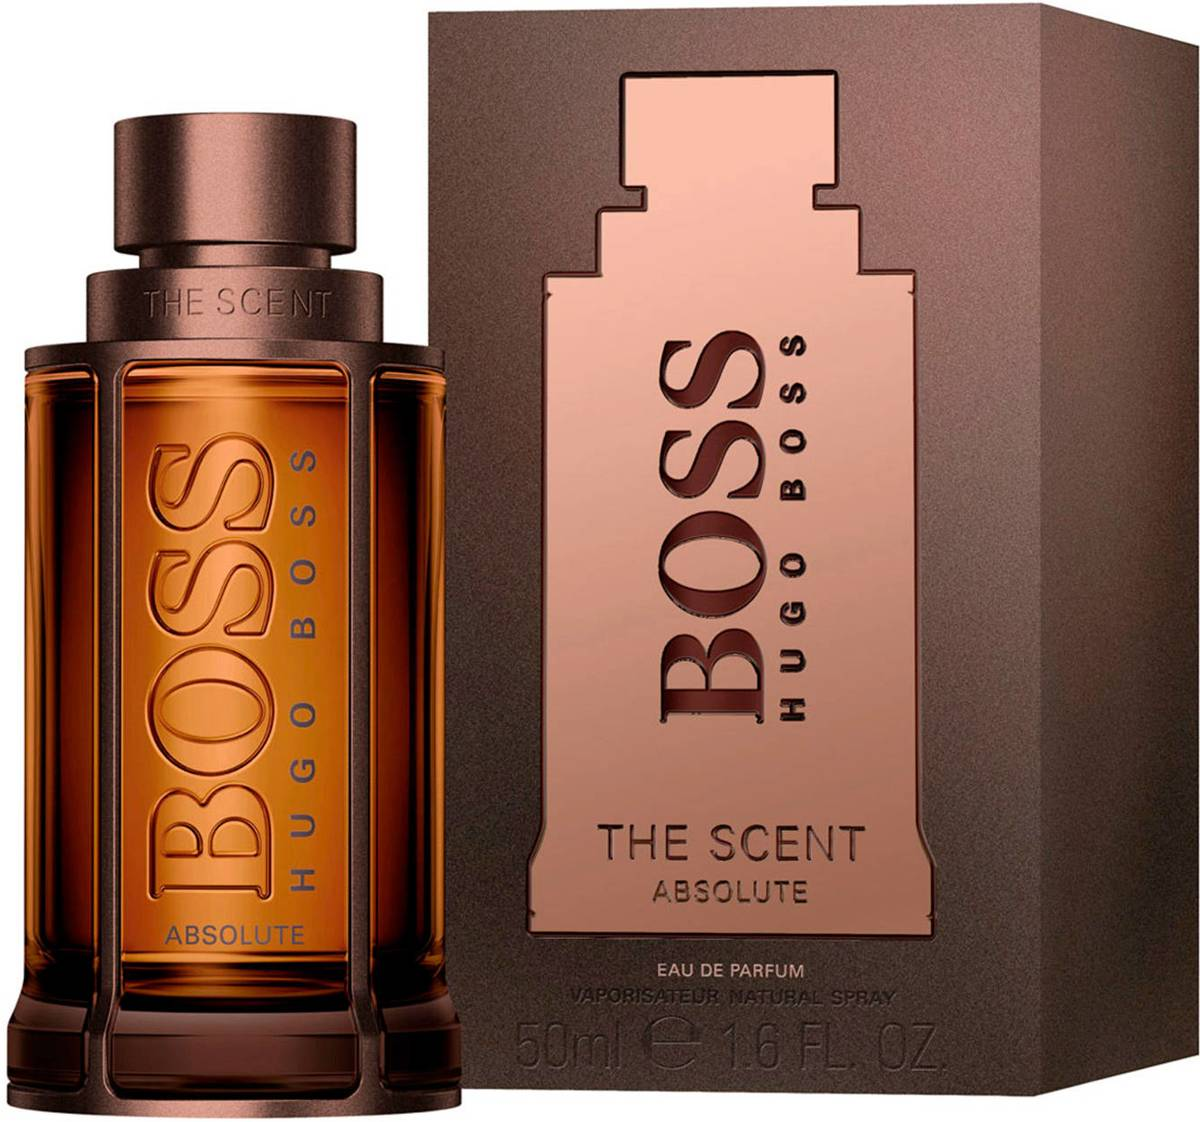 Hugo Boss-boss THE SCENT ABSOLUTE edp spray 50 ml